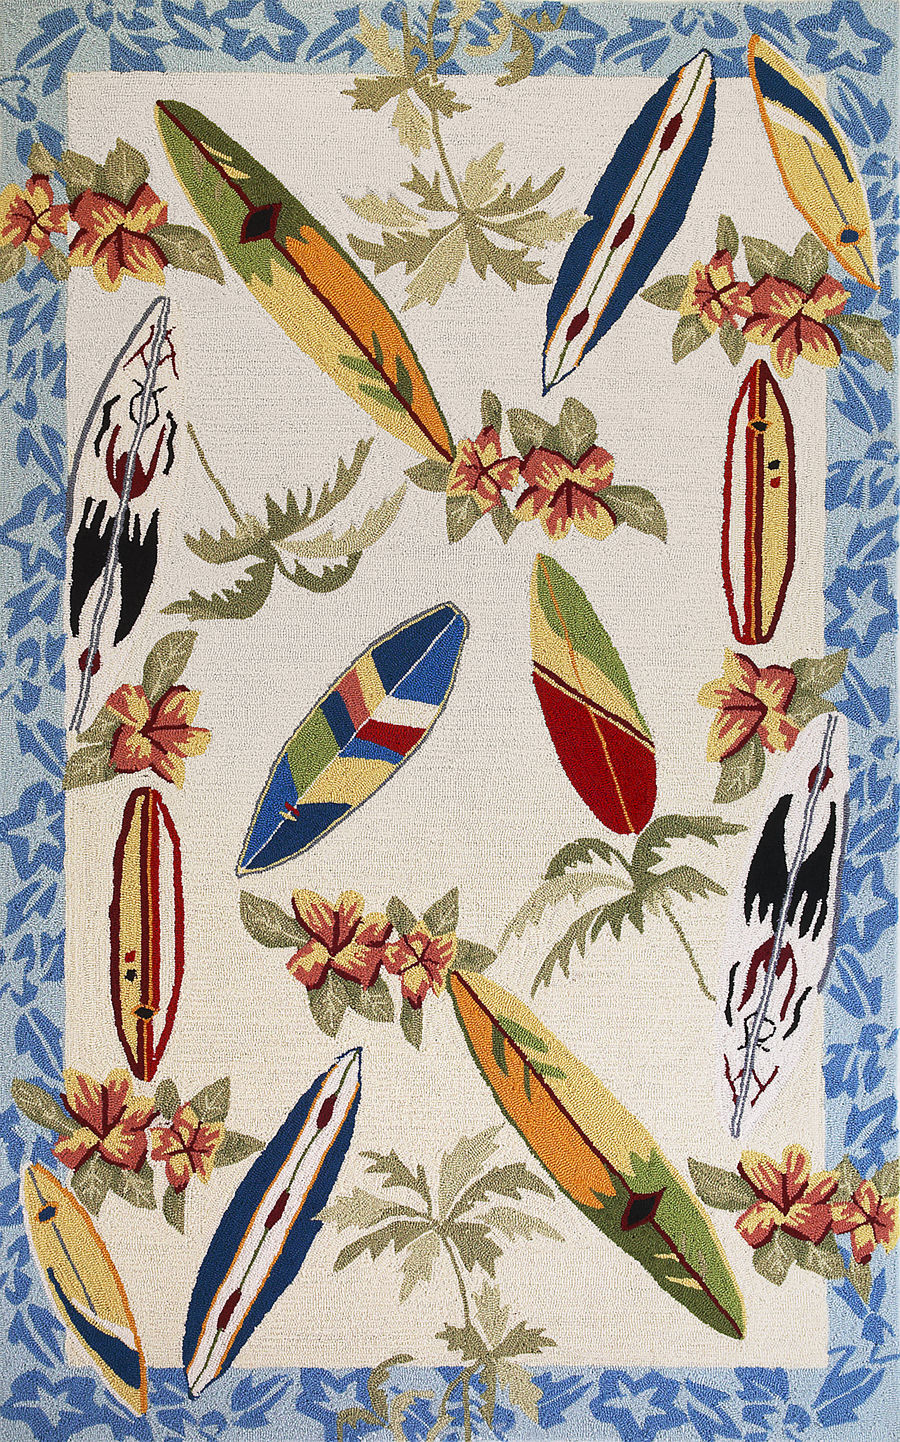 novelty area rugs  novelty rugs for sale  payless rugs - sonesta  ivory surfboards rug by kas